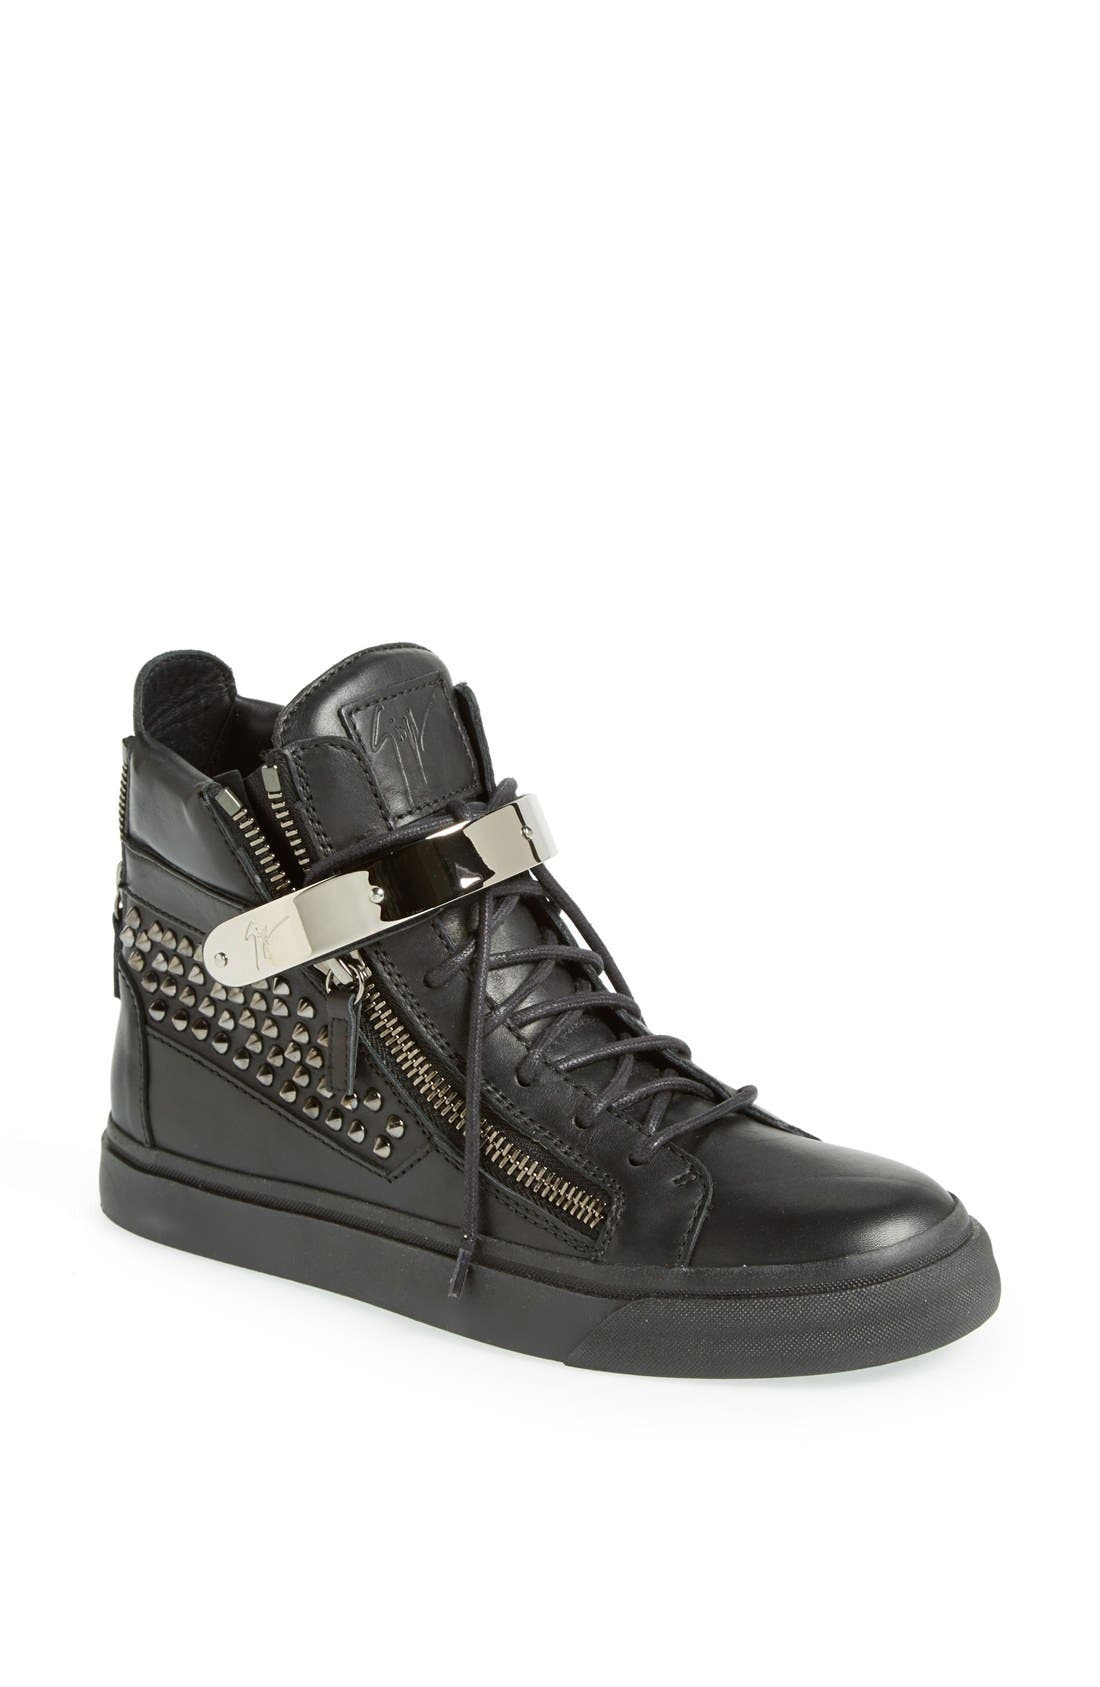 Alternate Image 1 Selected - Giuseppe Zanotti Studded High Top Sneaker (Women)